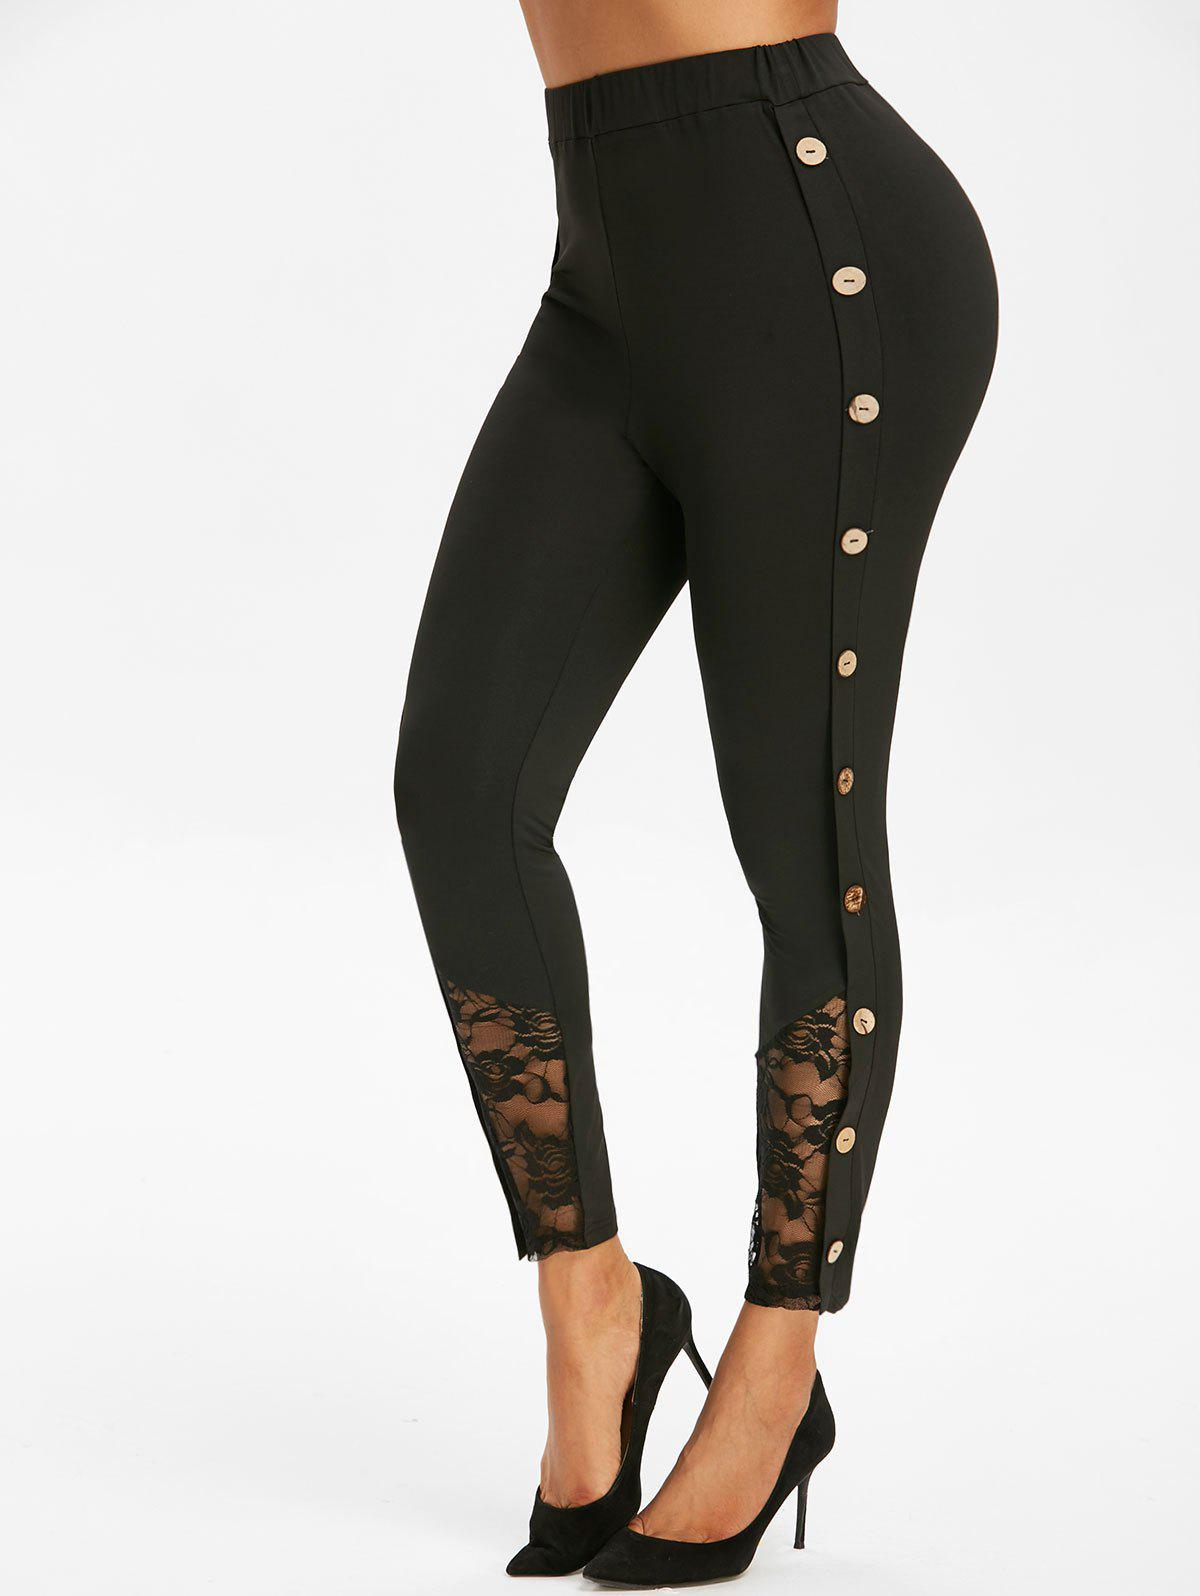 Discount Mock Button Lace Insert Ninth Leggings